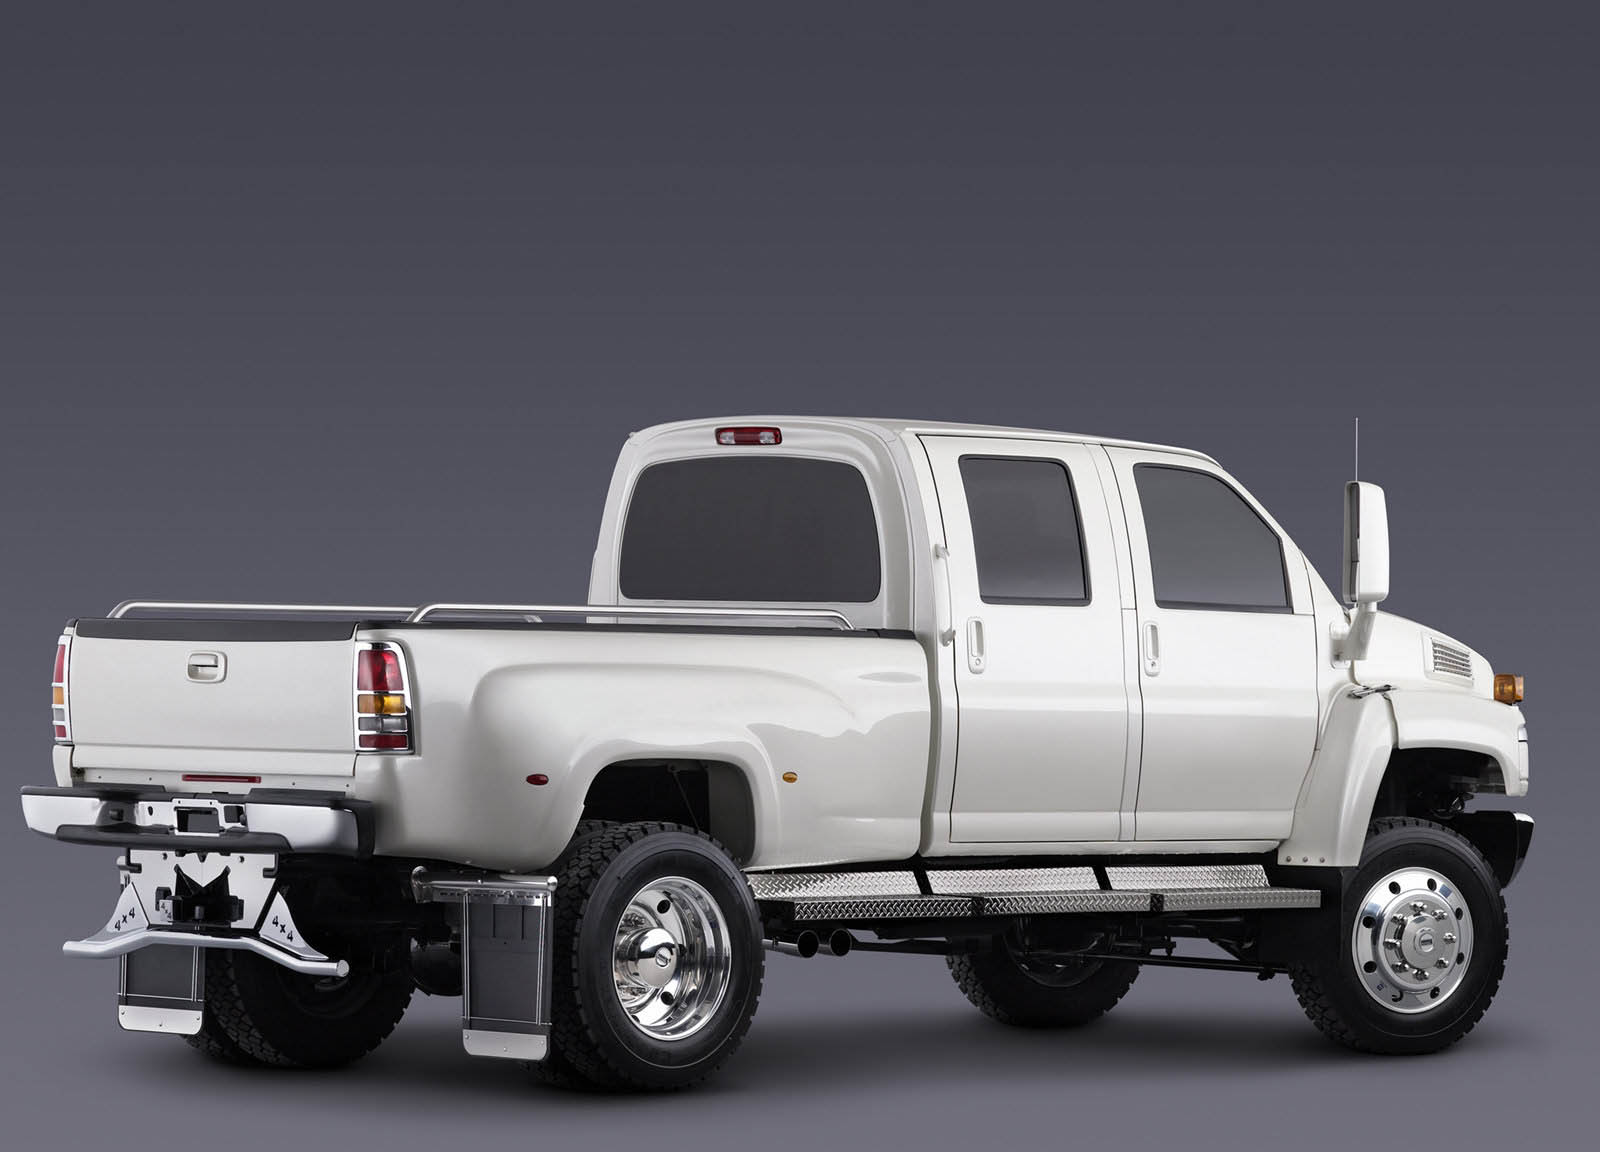 Chevy's Launching An Even More Heady-Duty Silverado 4500 ...